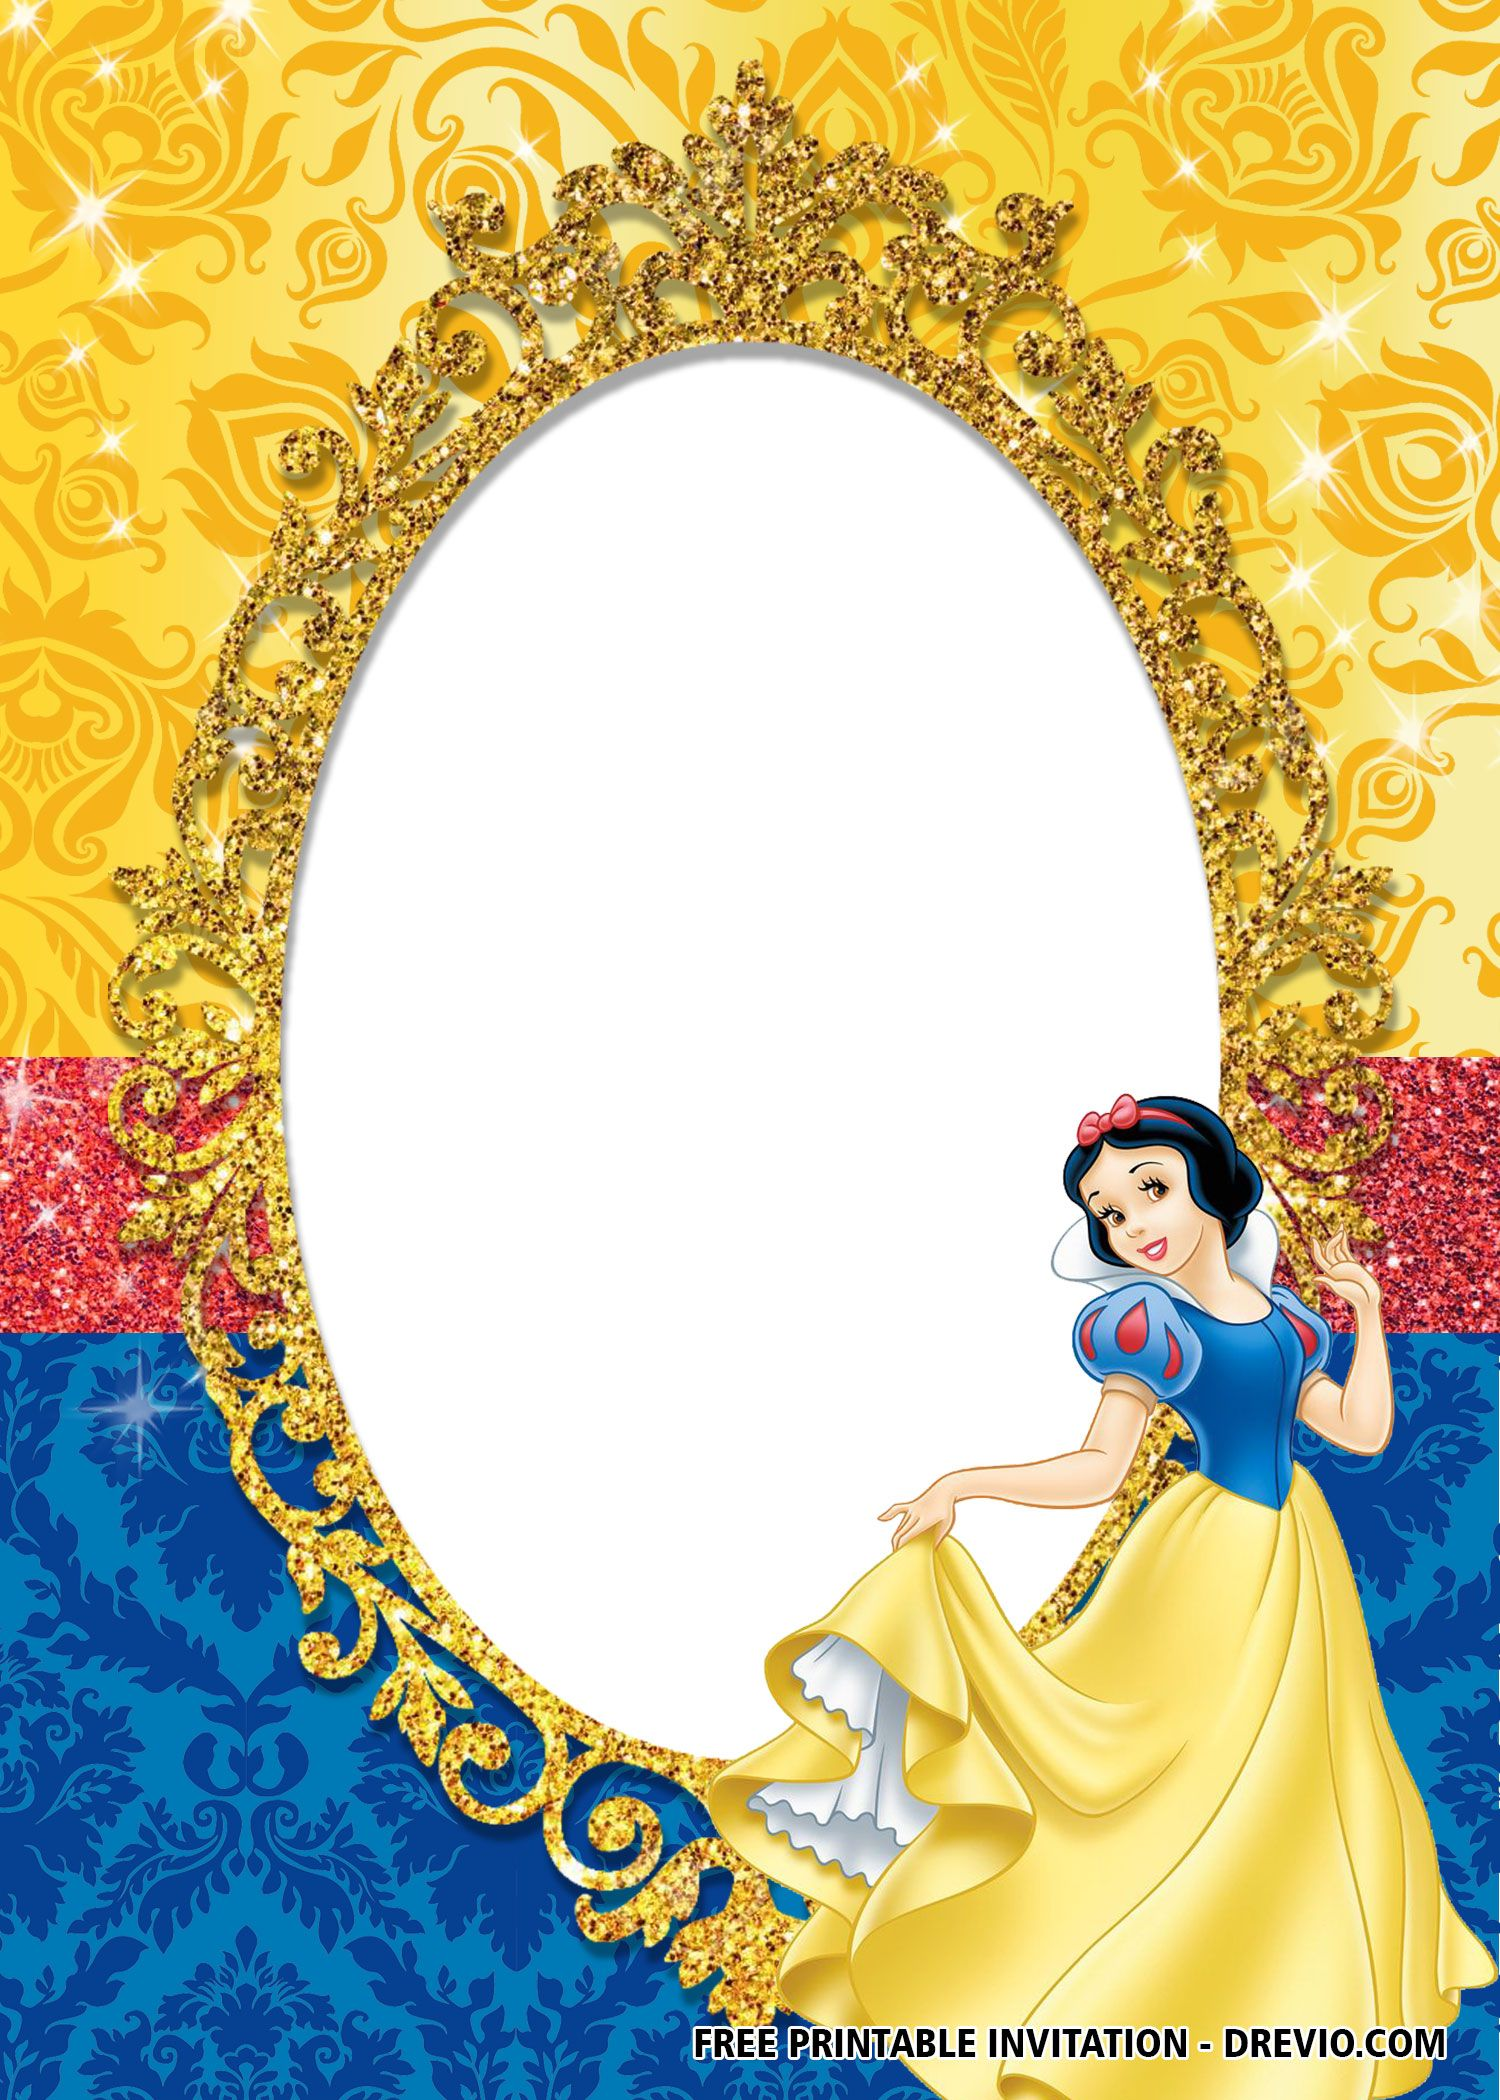 FREE Princess Snow White Invitation Templates  Snow white